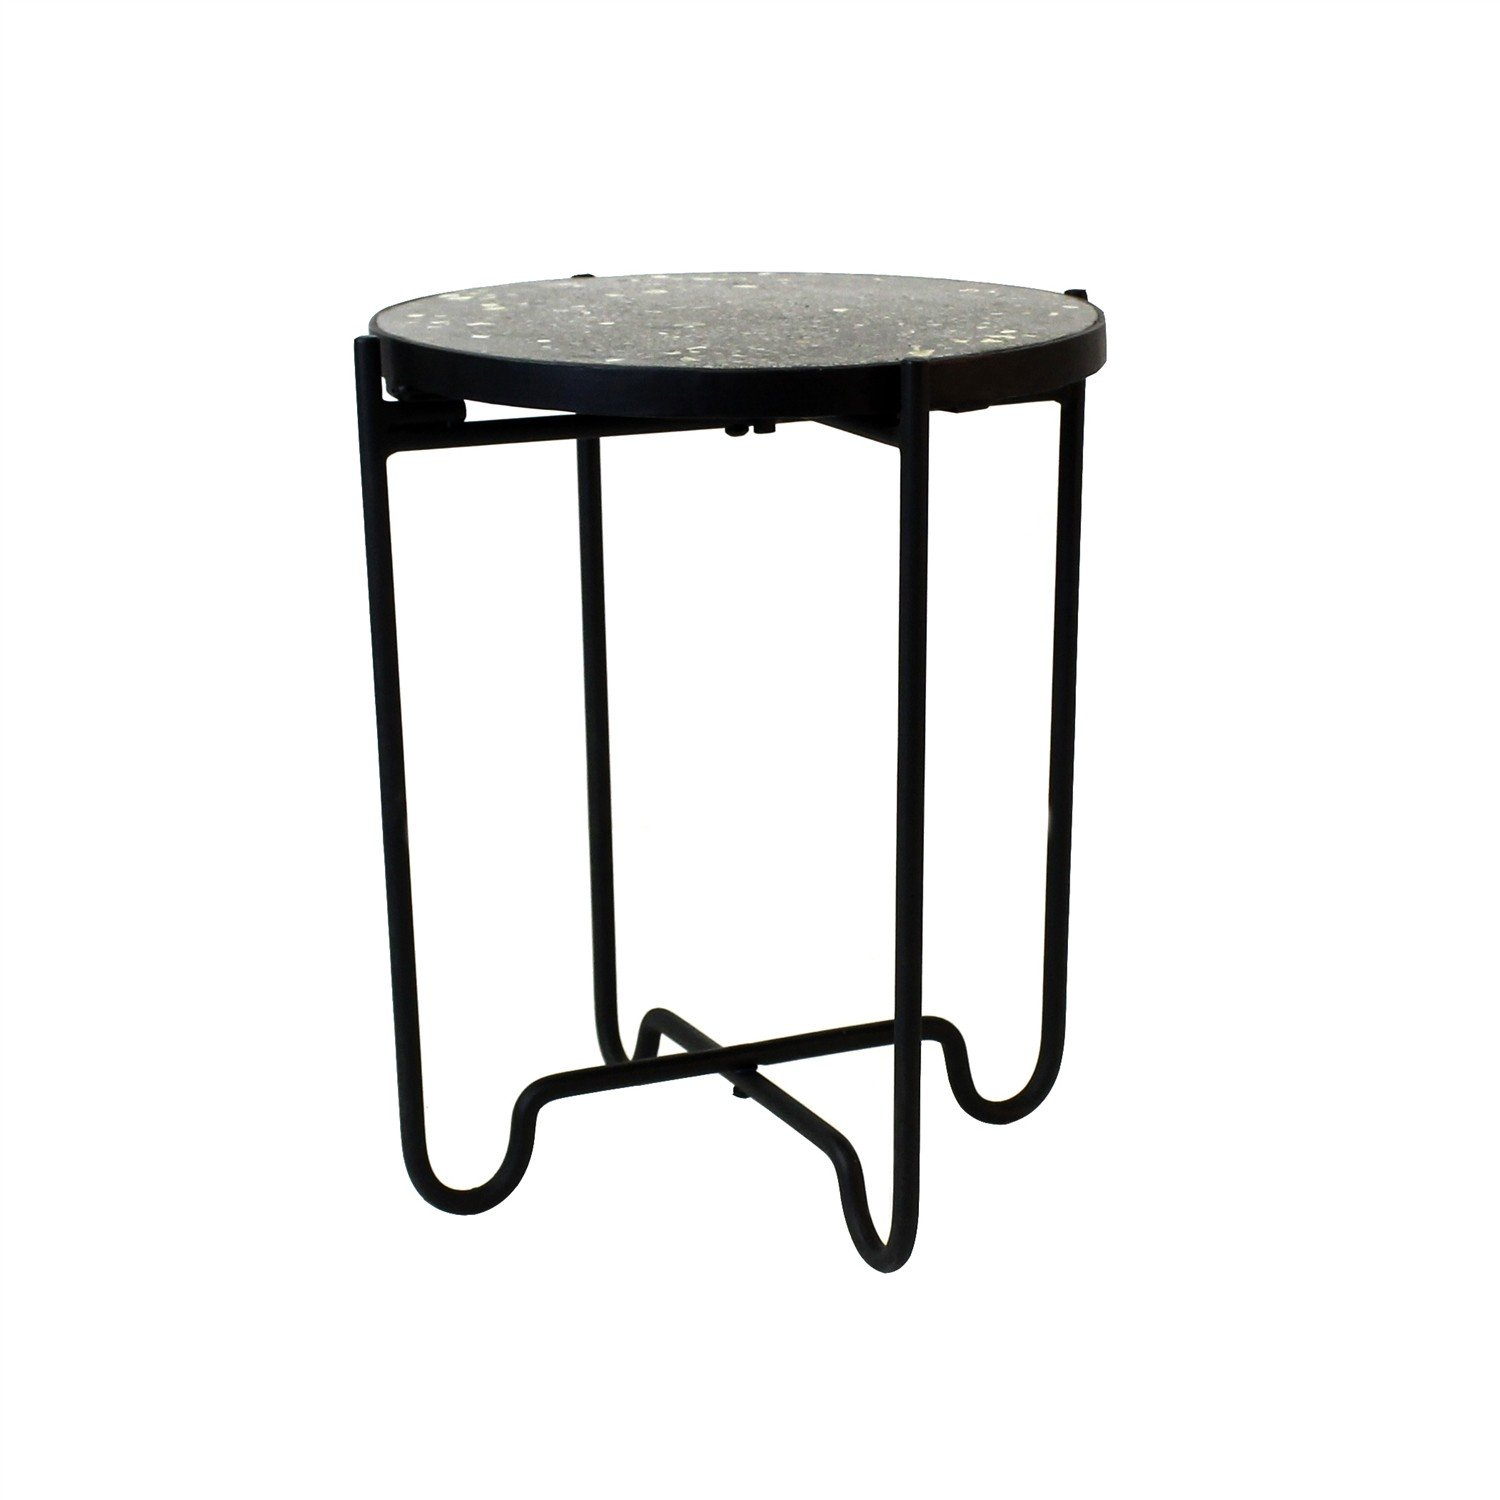 terrazzo black stone iron round side table marble pedestal accent stand kitchen dining white wood small living room decor inch end mid century sideboard fire ethan allen nesting